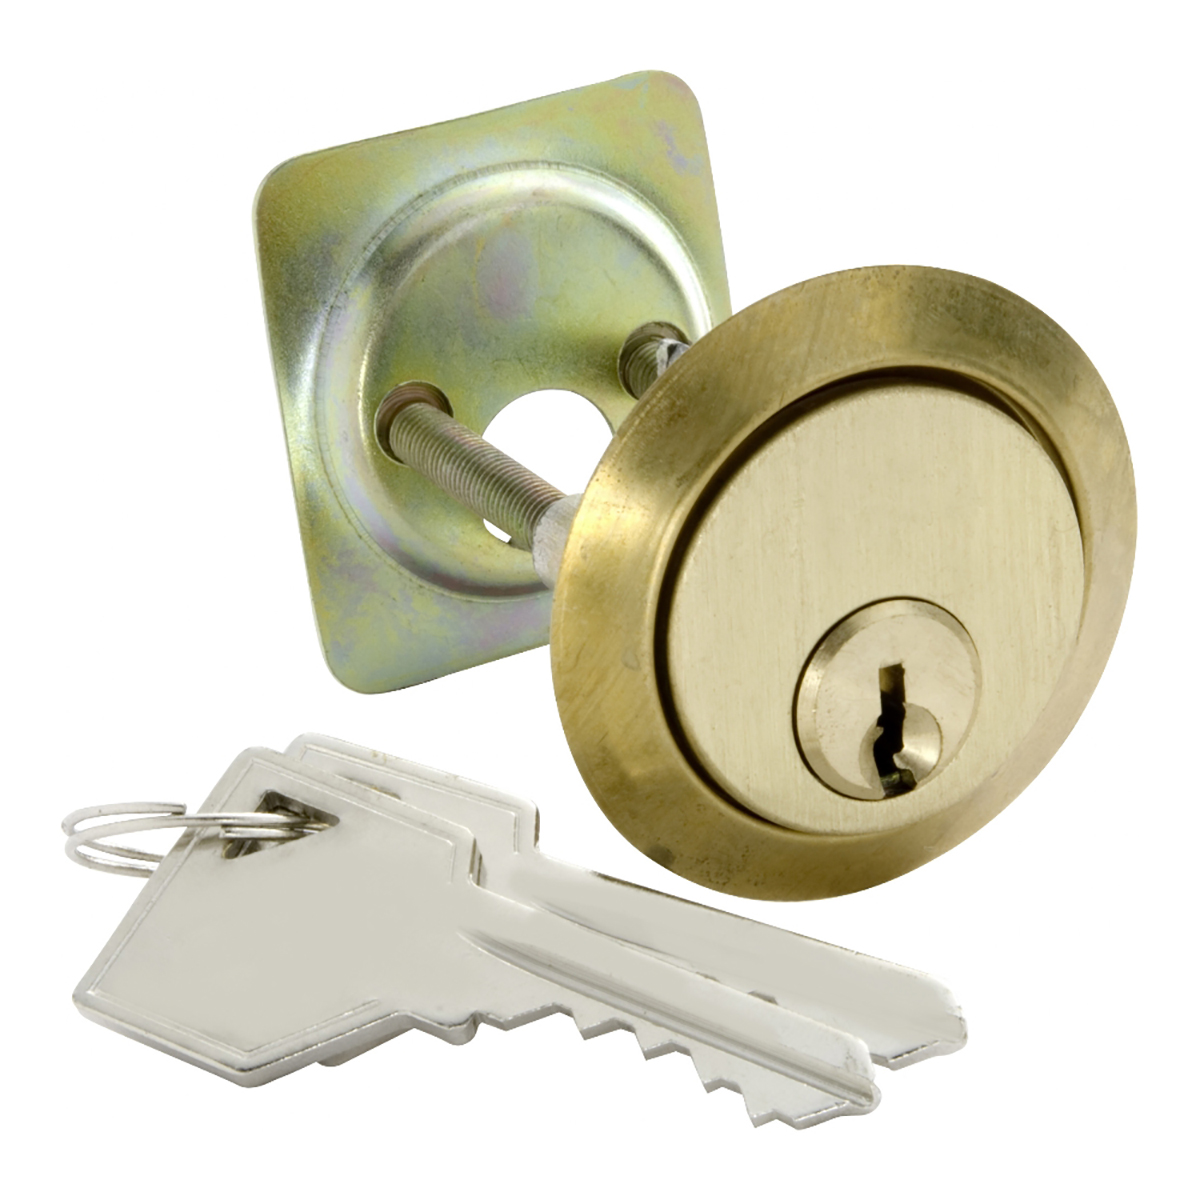 weiser deadbolt installation instructions